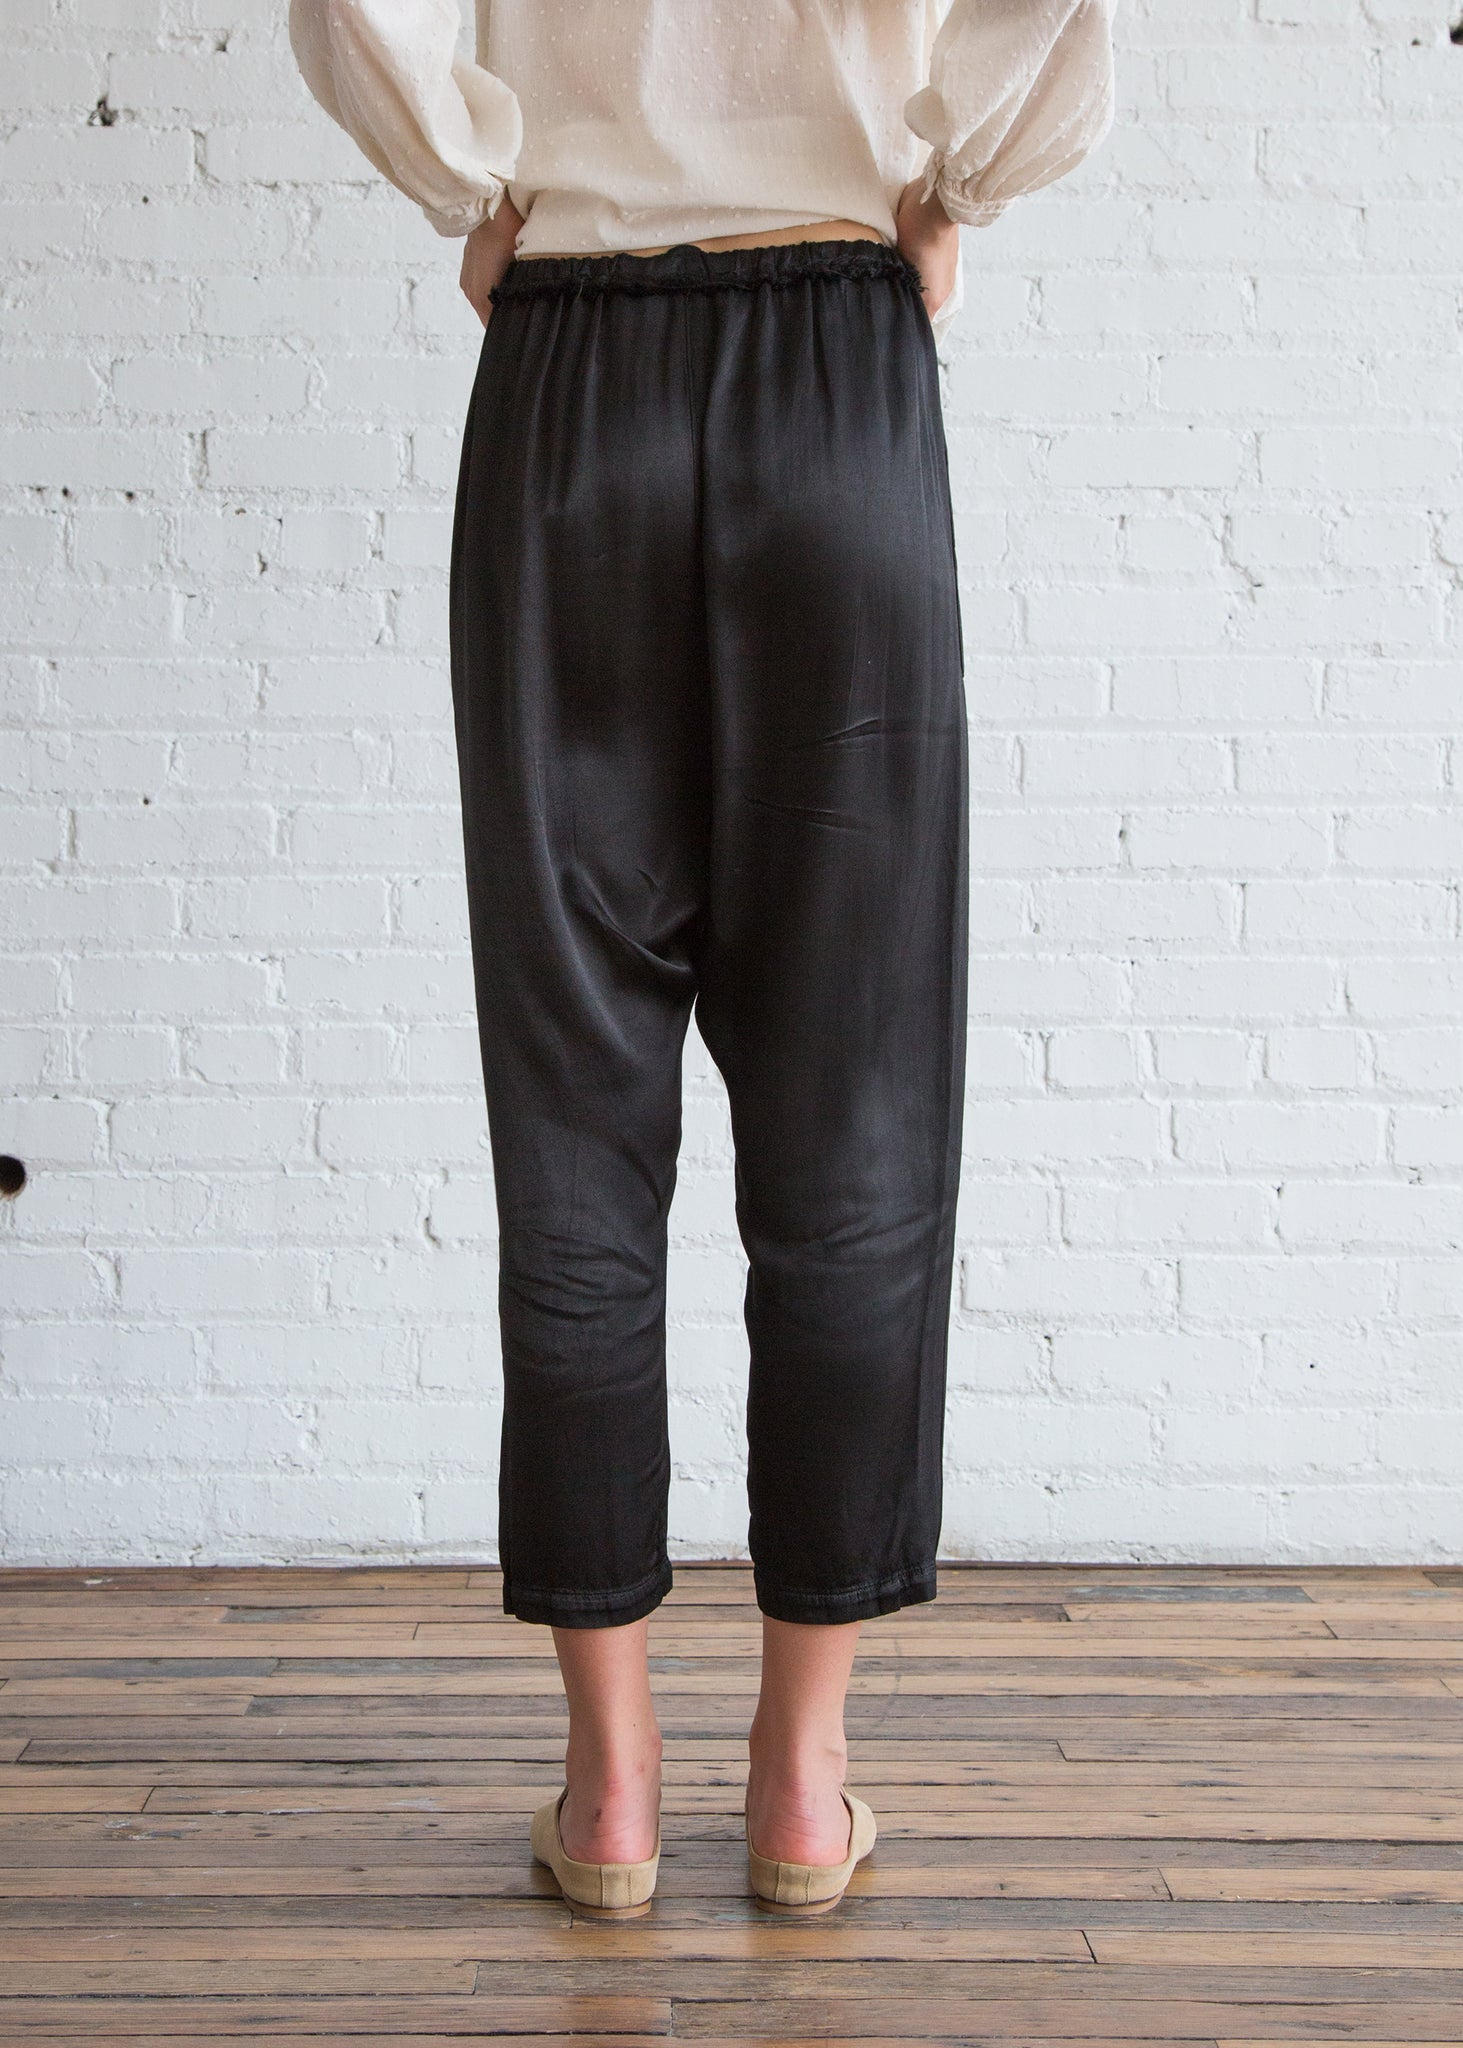 Raquel Allegra Pebble Satin Drop Crotch Pant Black